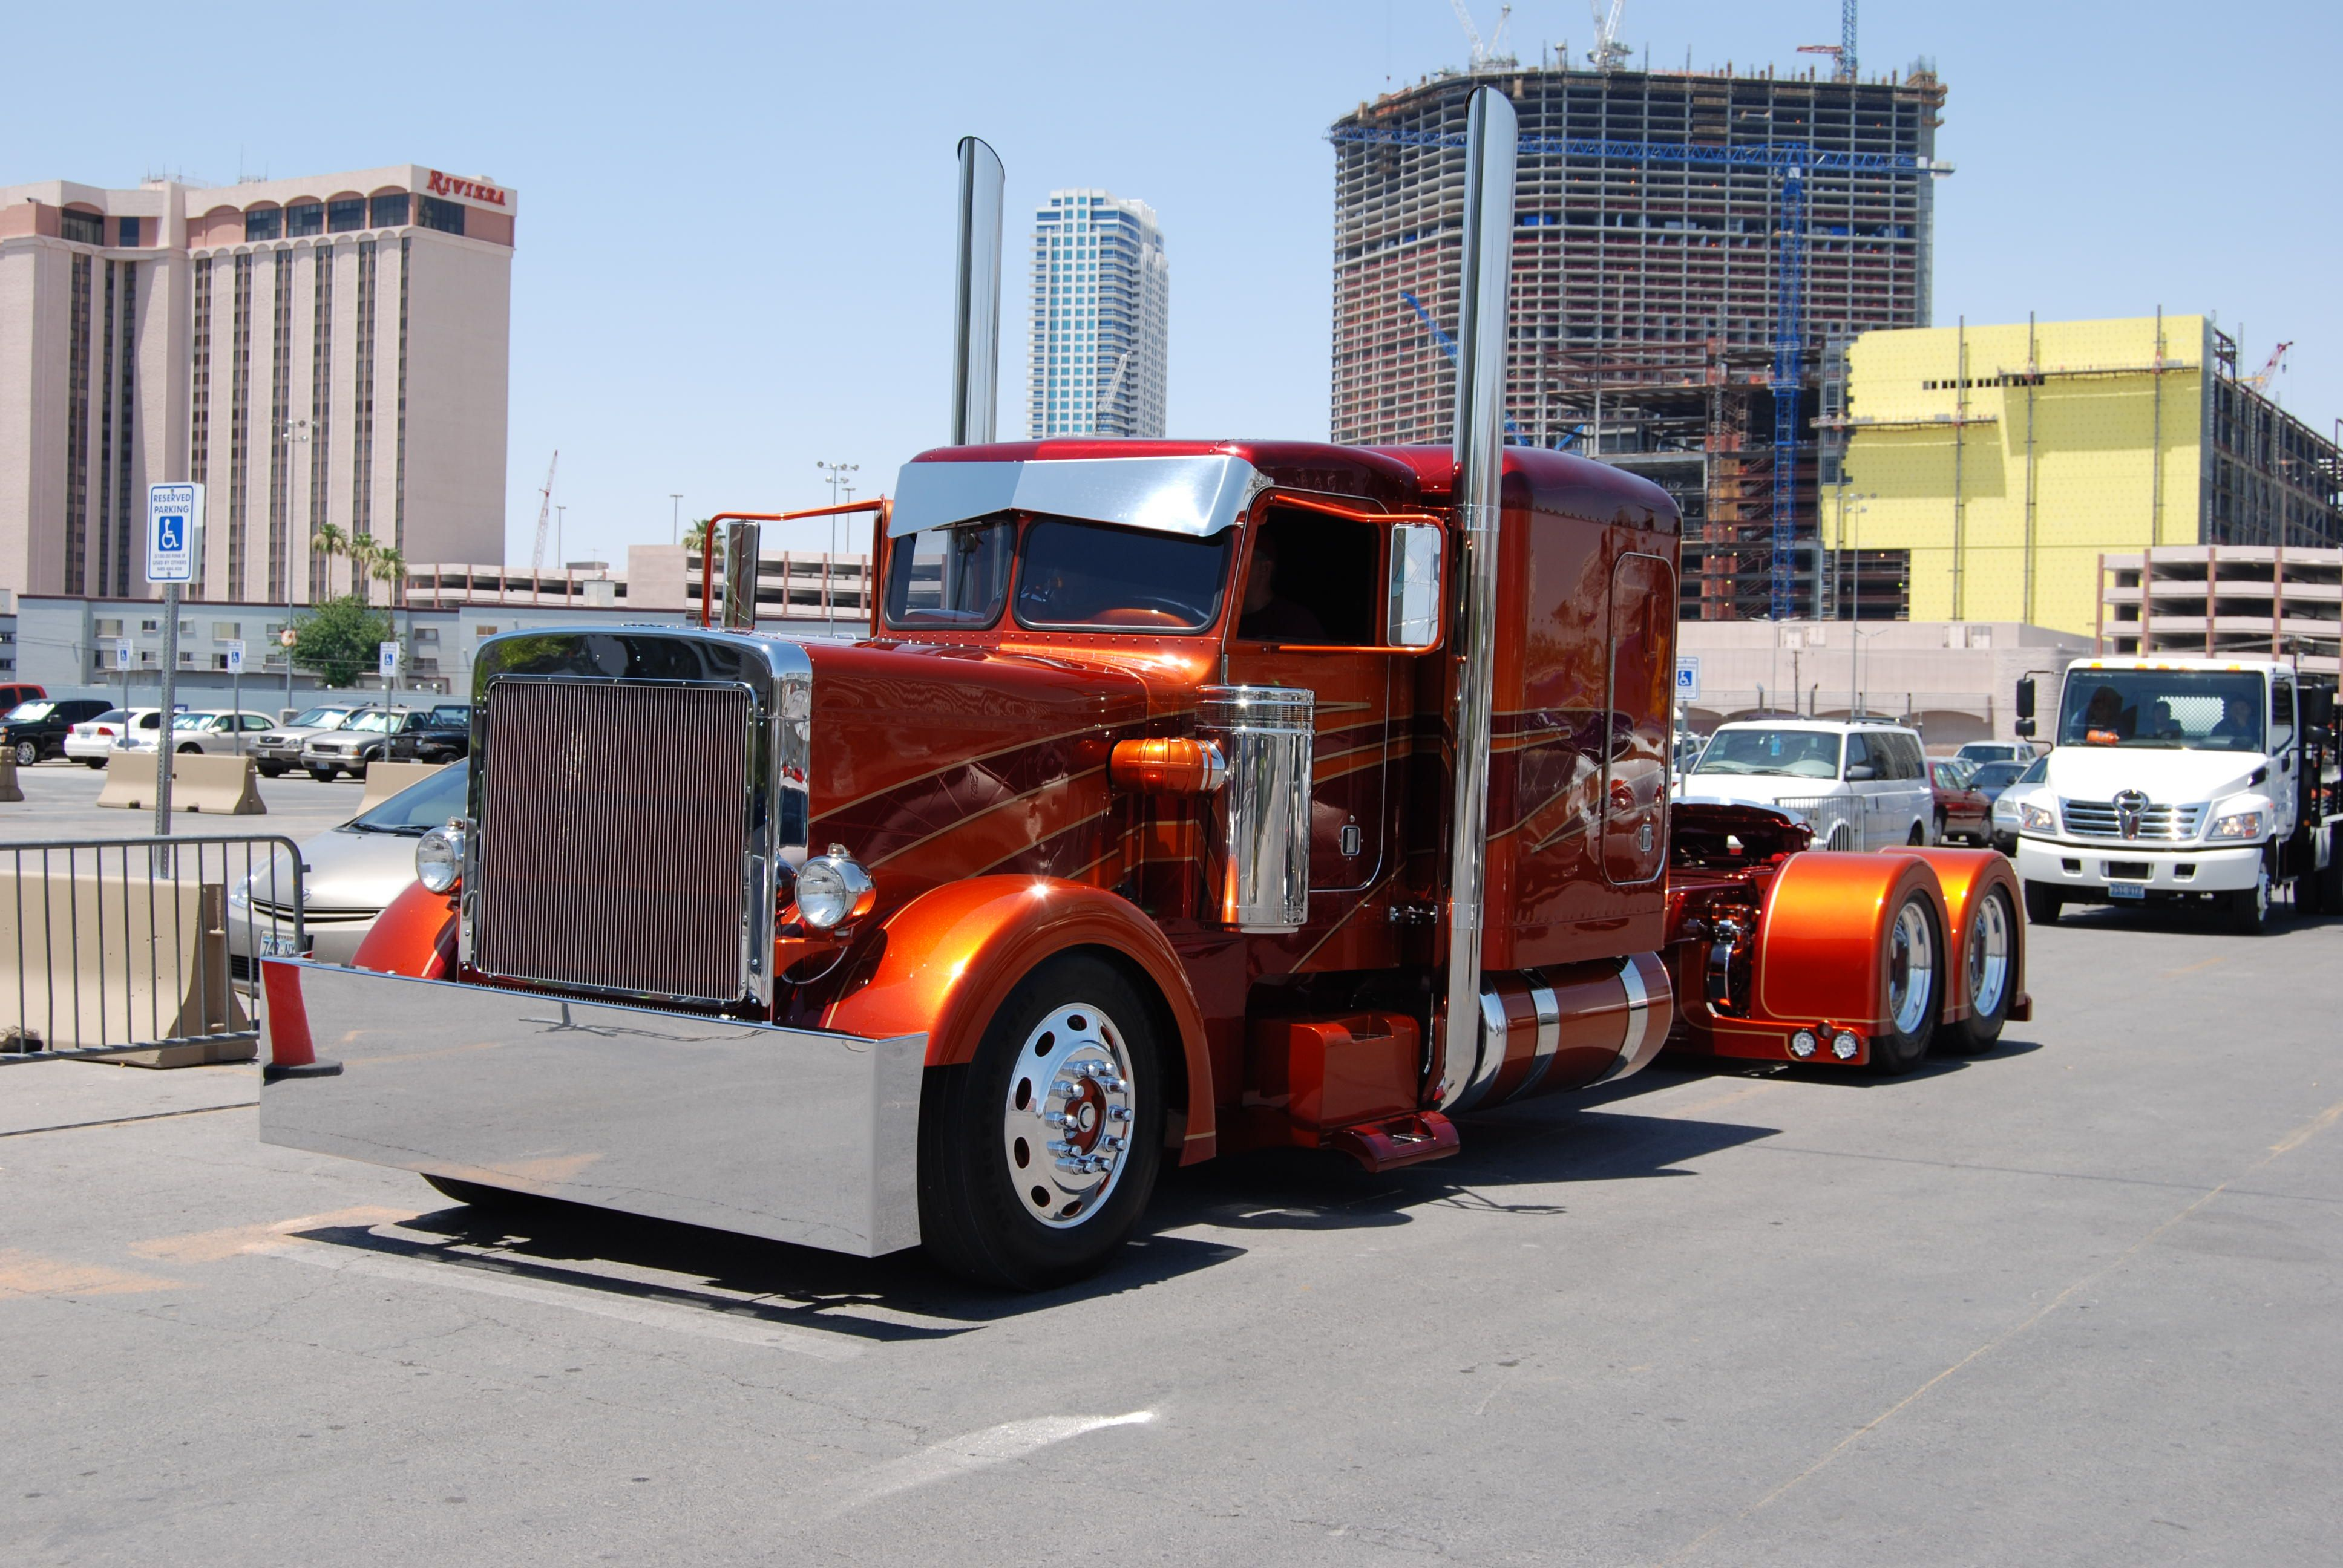 Peterbilt Fire Truck Wallpaper For Android Wallpaper With Images